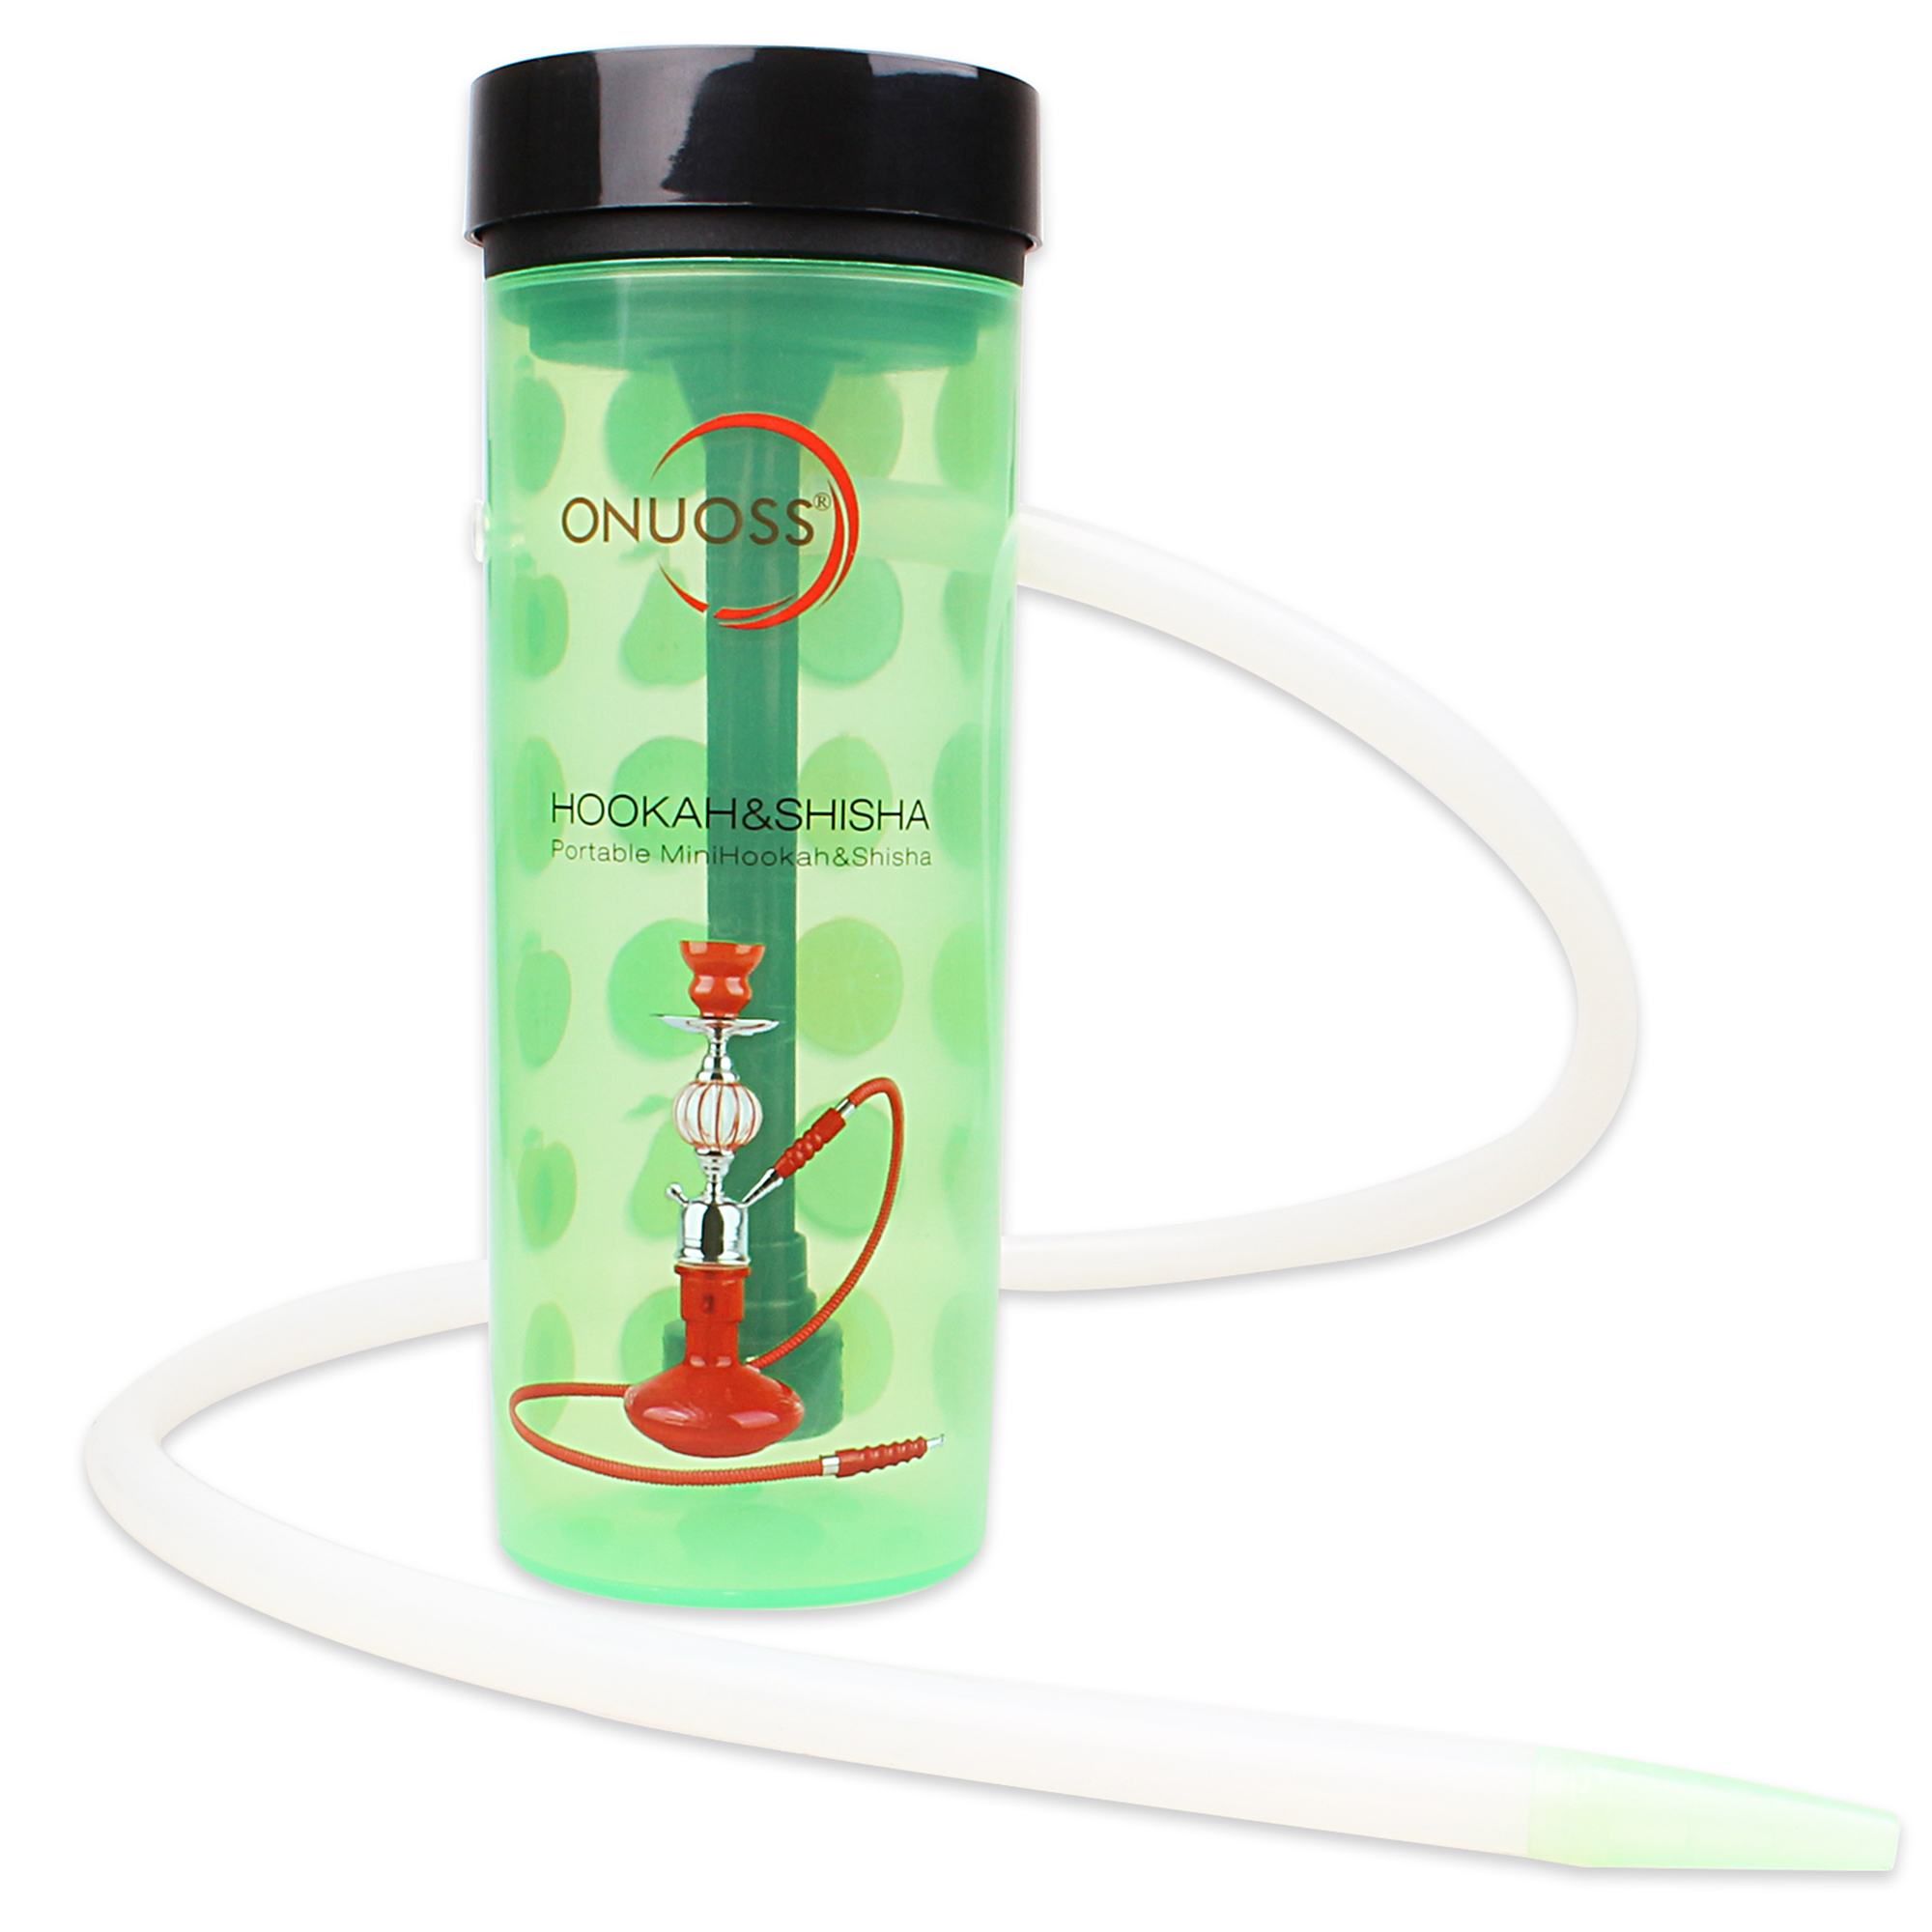 how to make hookah at home with plastic bottle